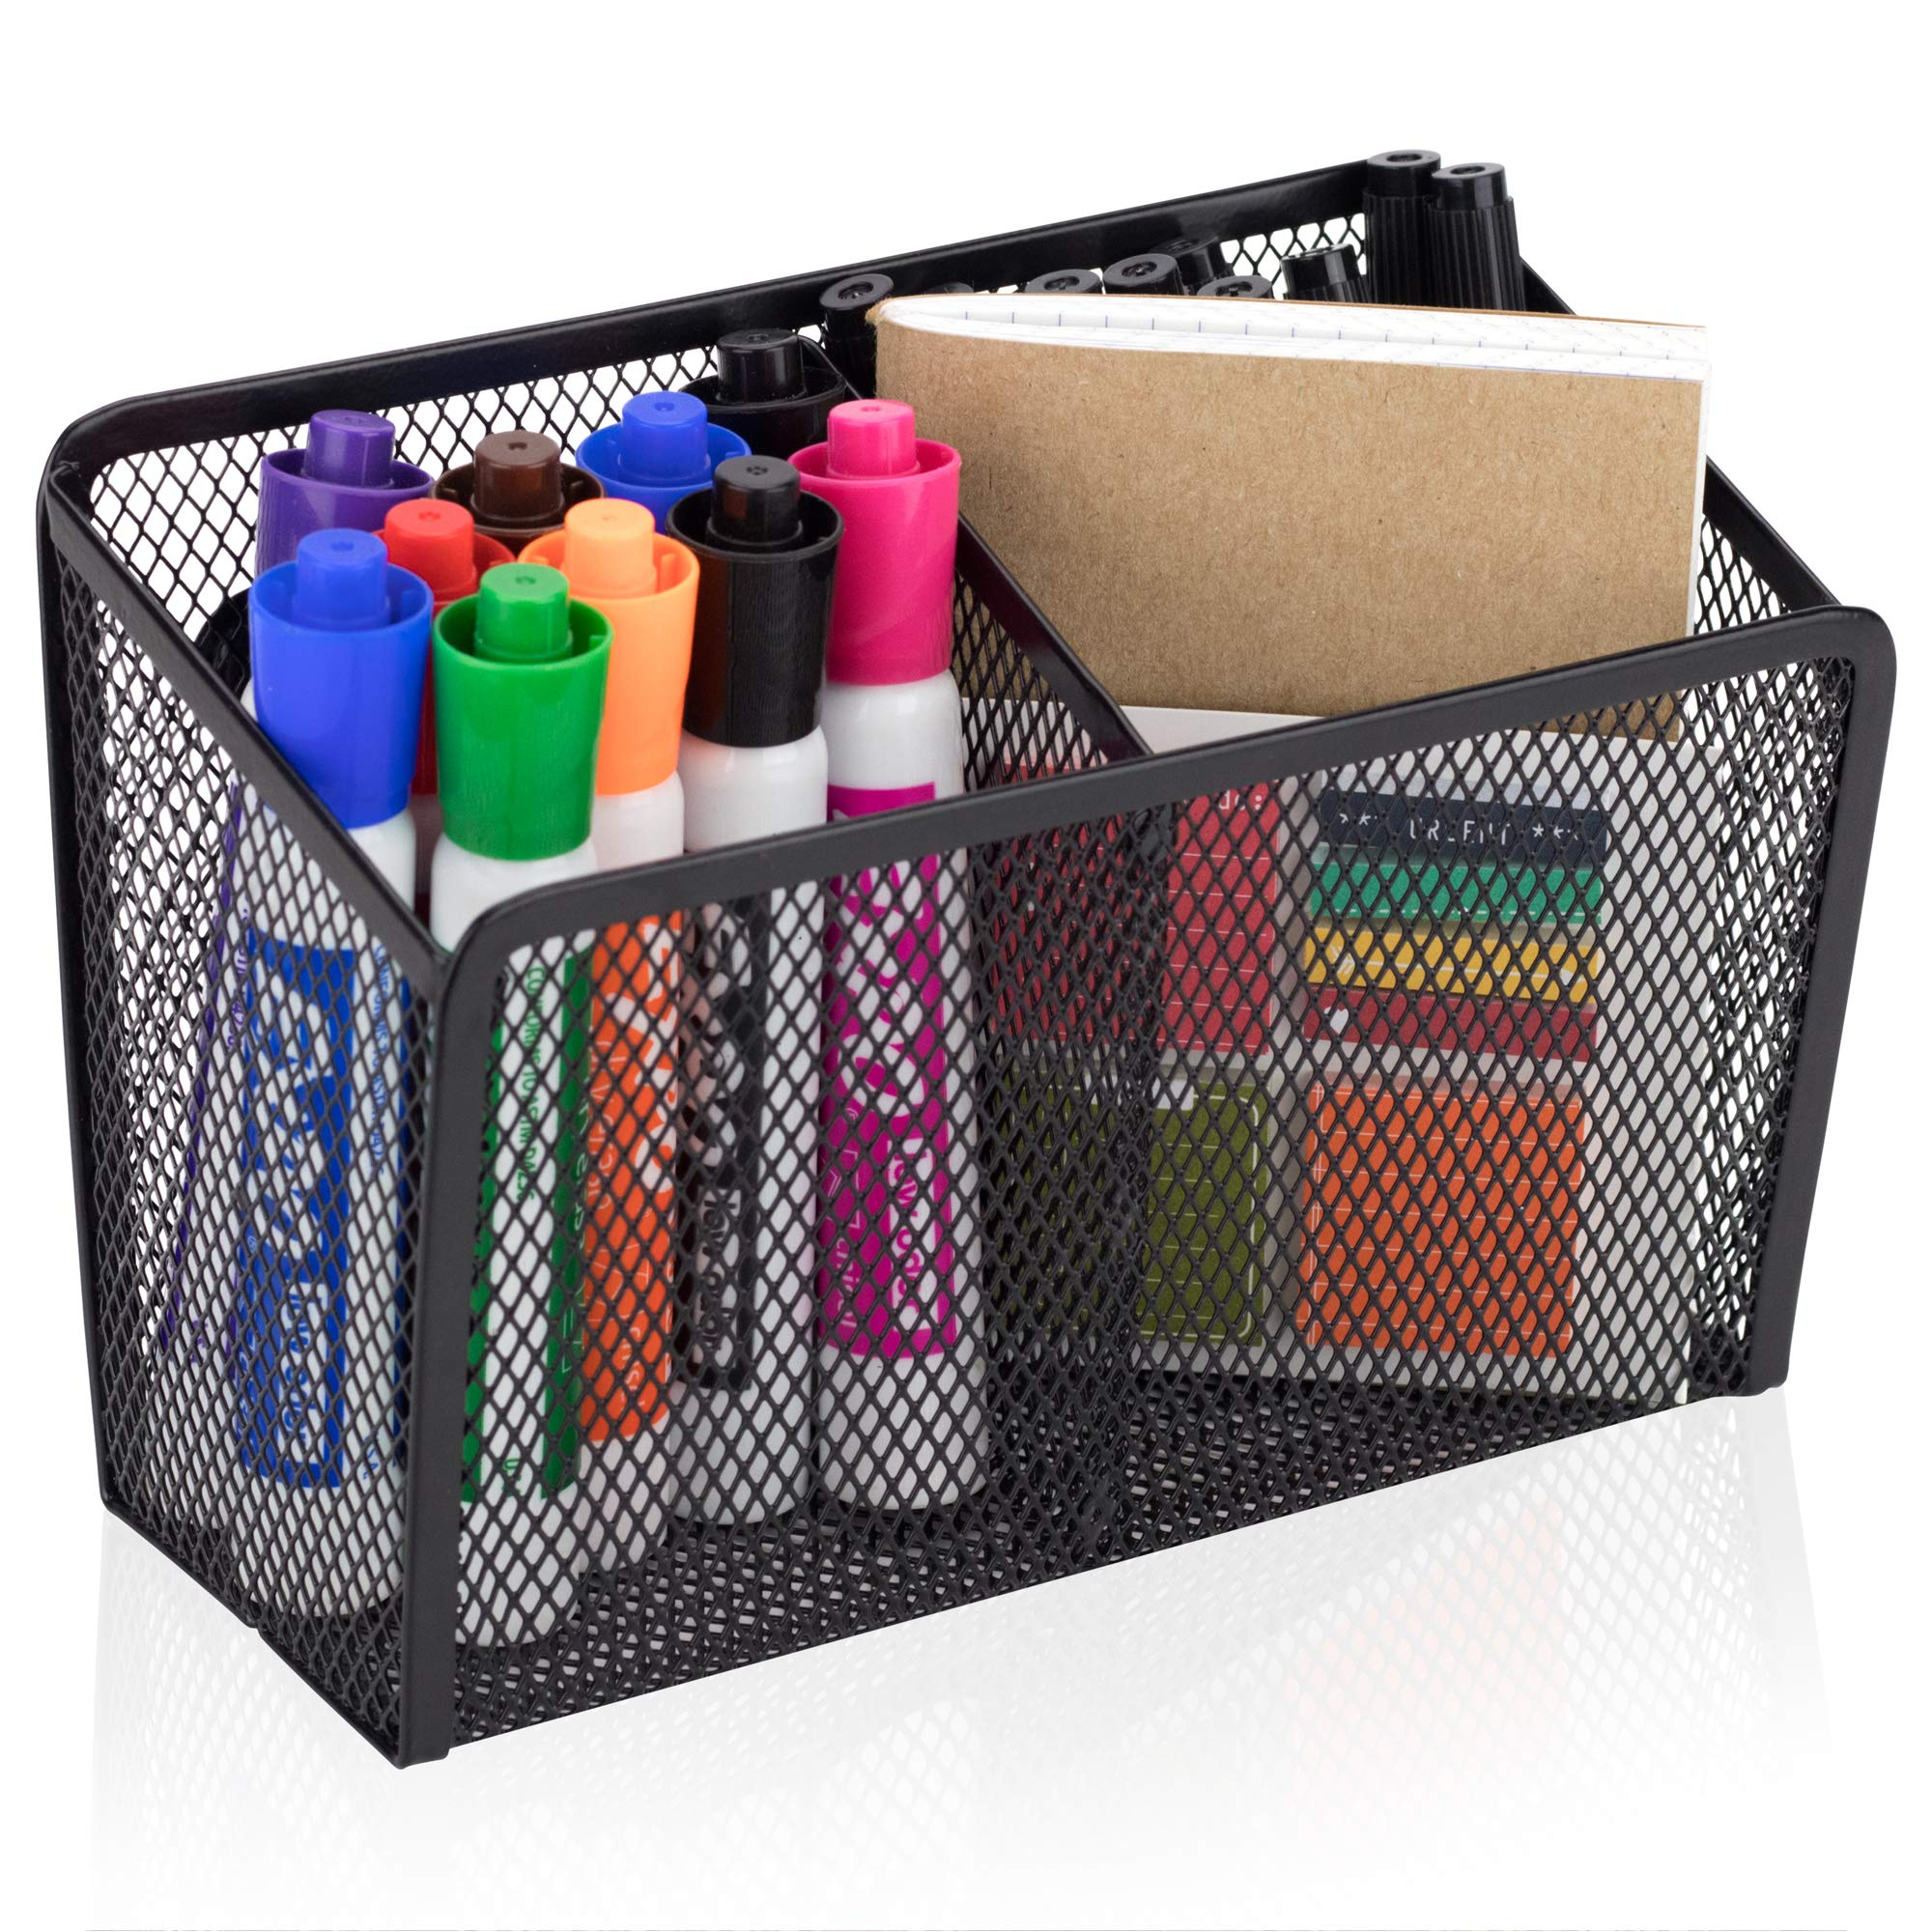 Workablez Magnetic Pencil Holder - 2 Generous Compartments Magnetic Storage Basket Organizer - Extra Strong Magnets - Perfect Mesh Pen Holder to Hold Whiteboard, Locker Accessories by Workablez